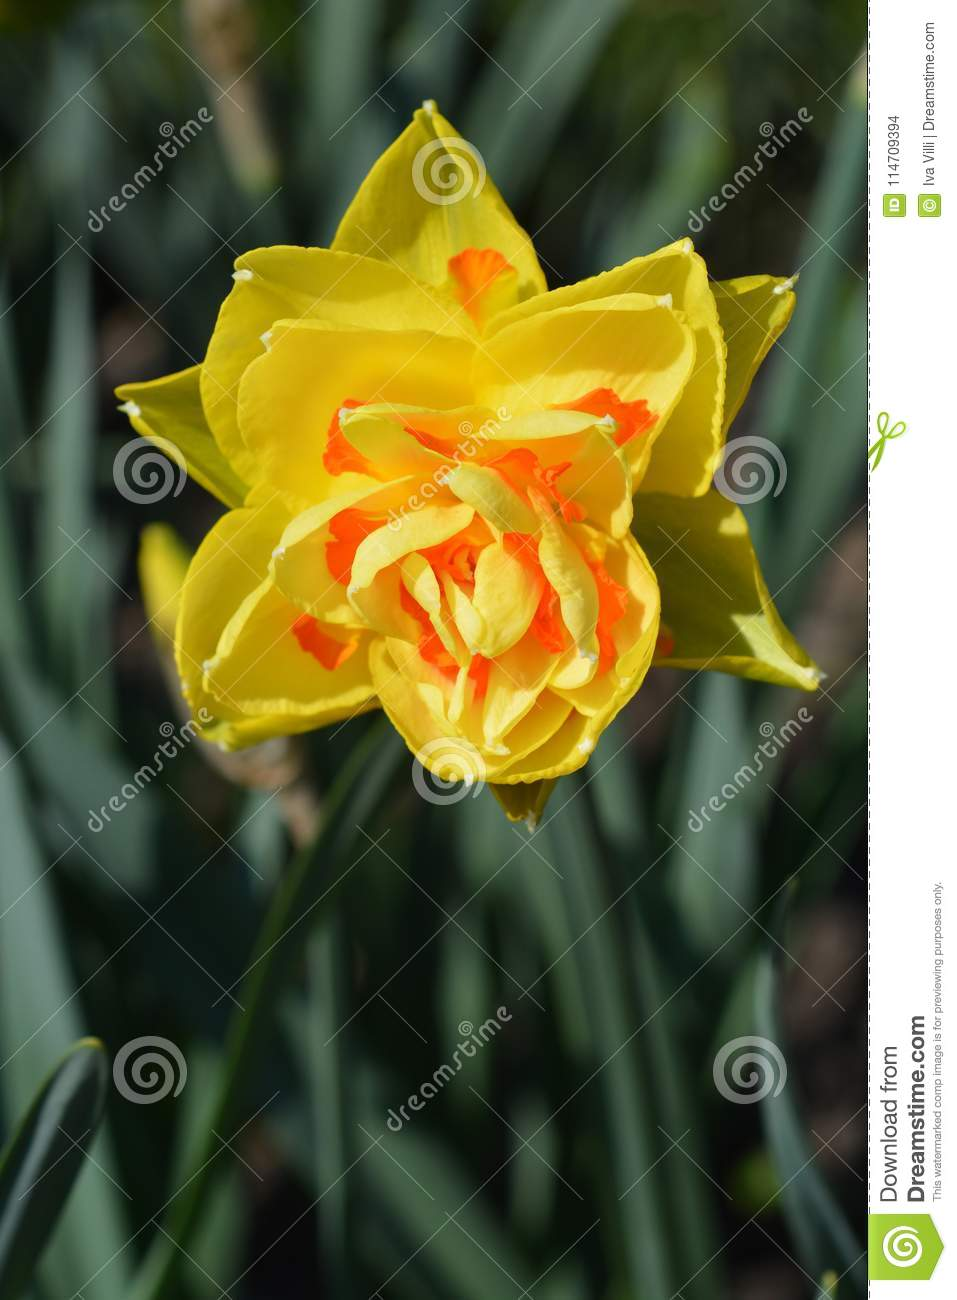 Tahiti Daffodil Stock Photo Image Of Double Garden 114709394